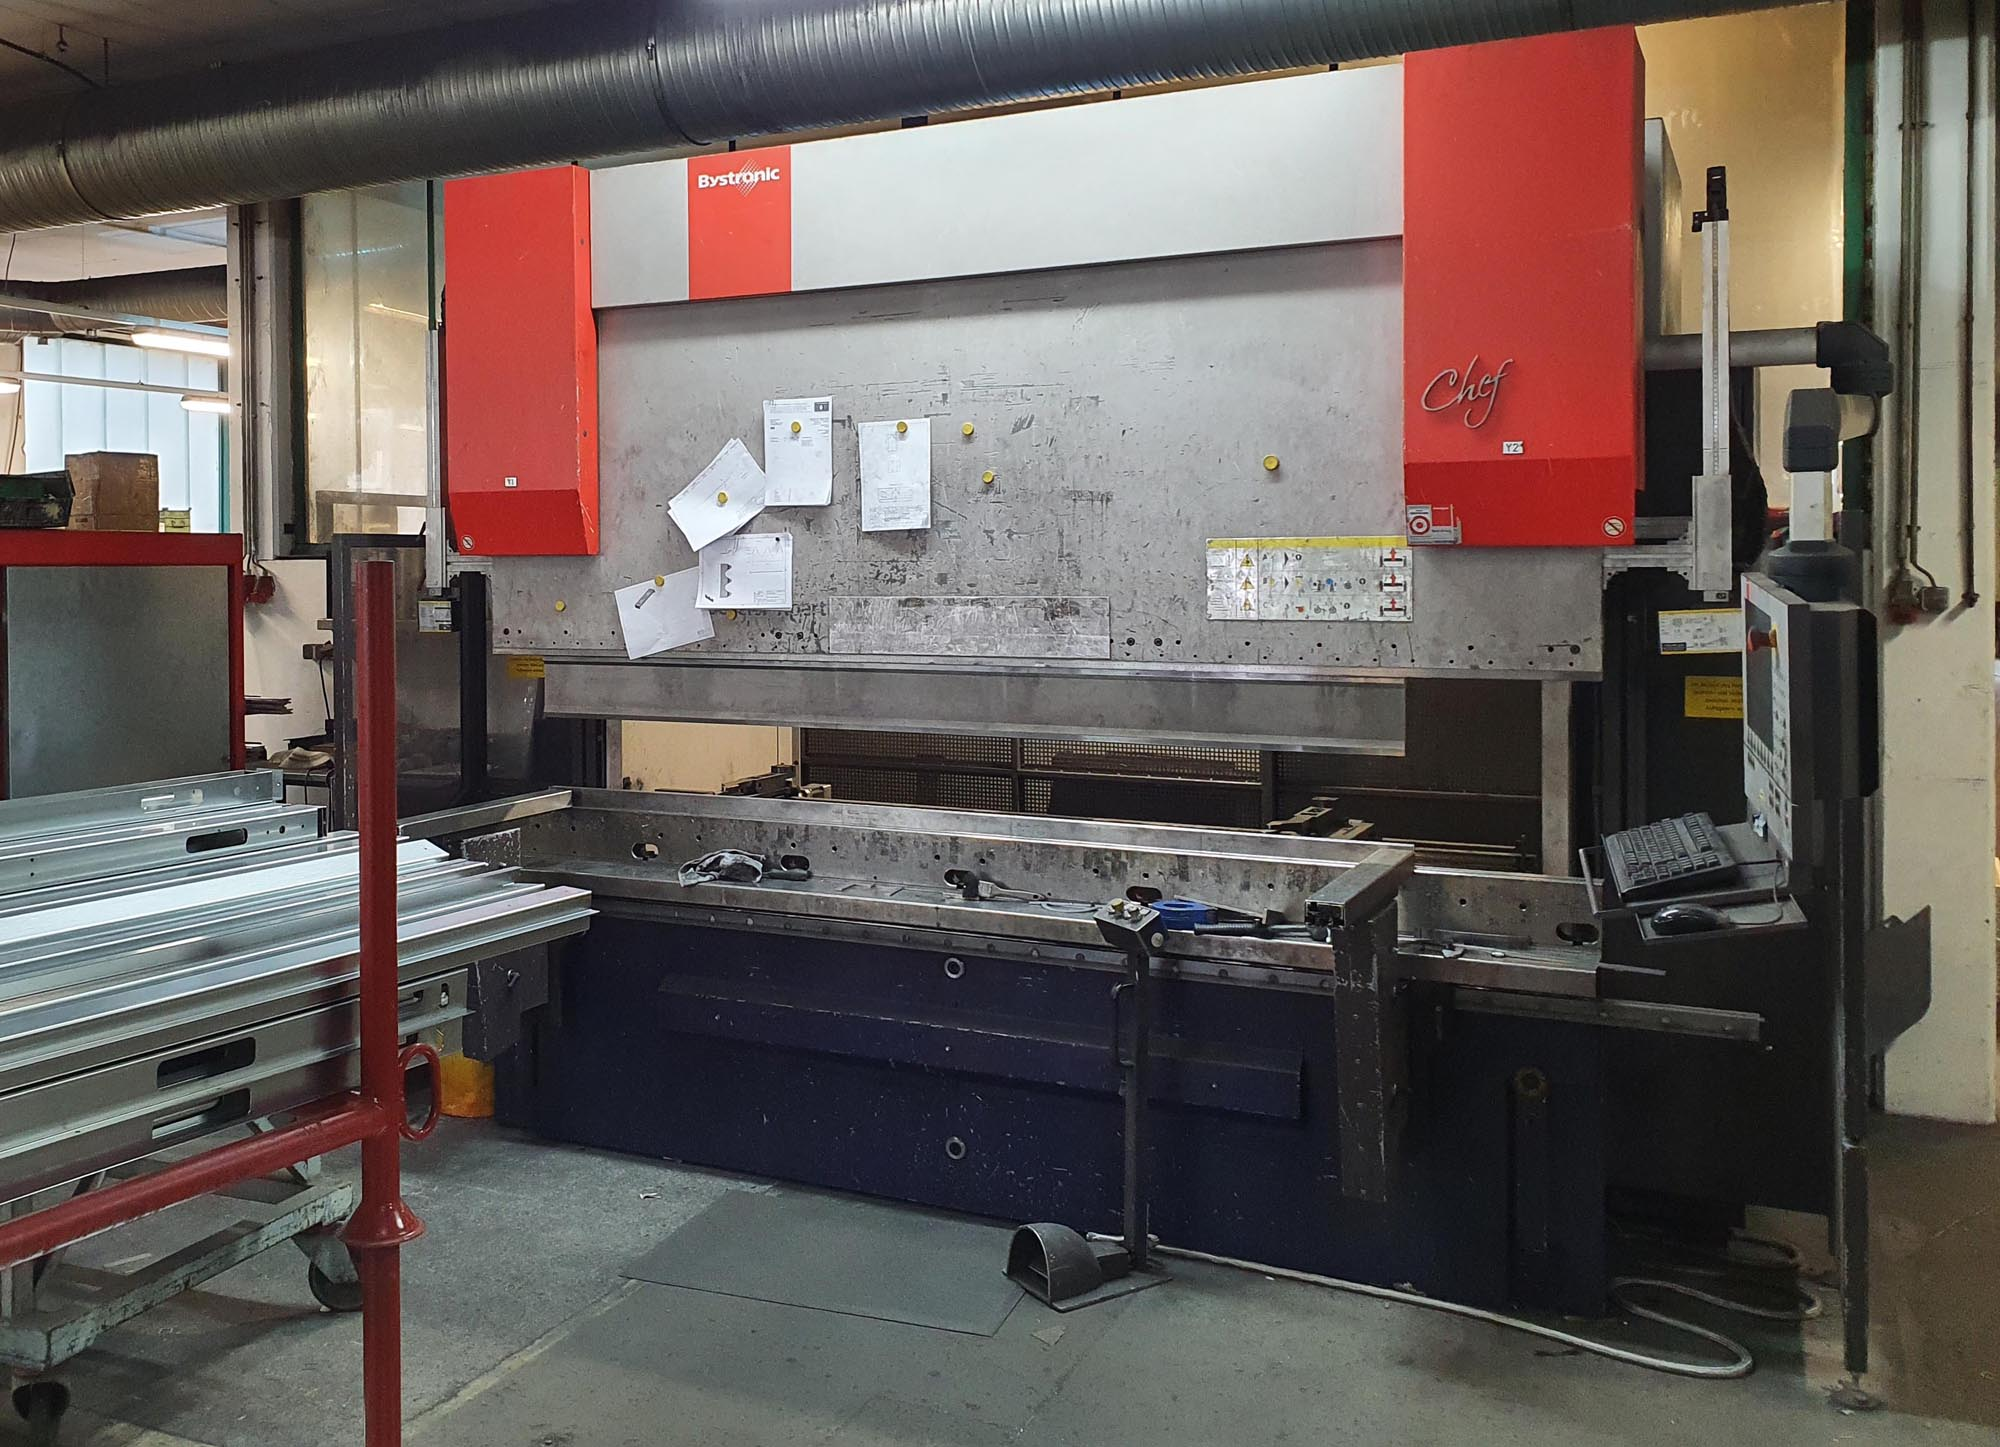 used  Press Brake - Hydraulic Bystronic Xpert 150/3100